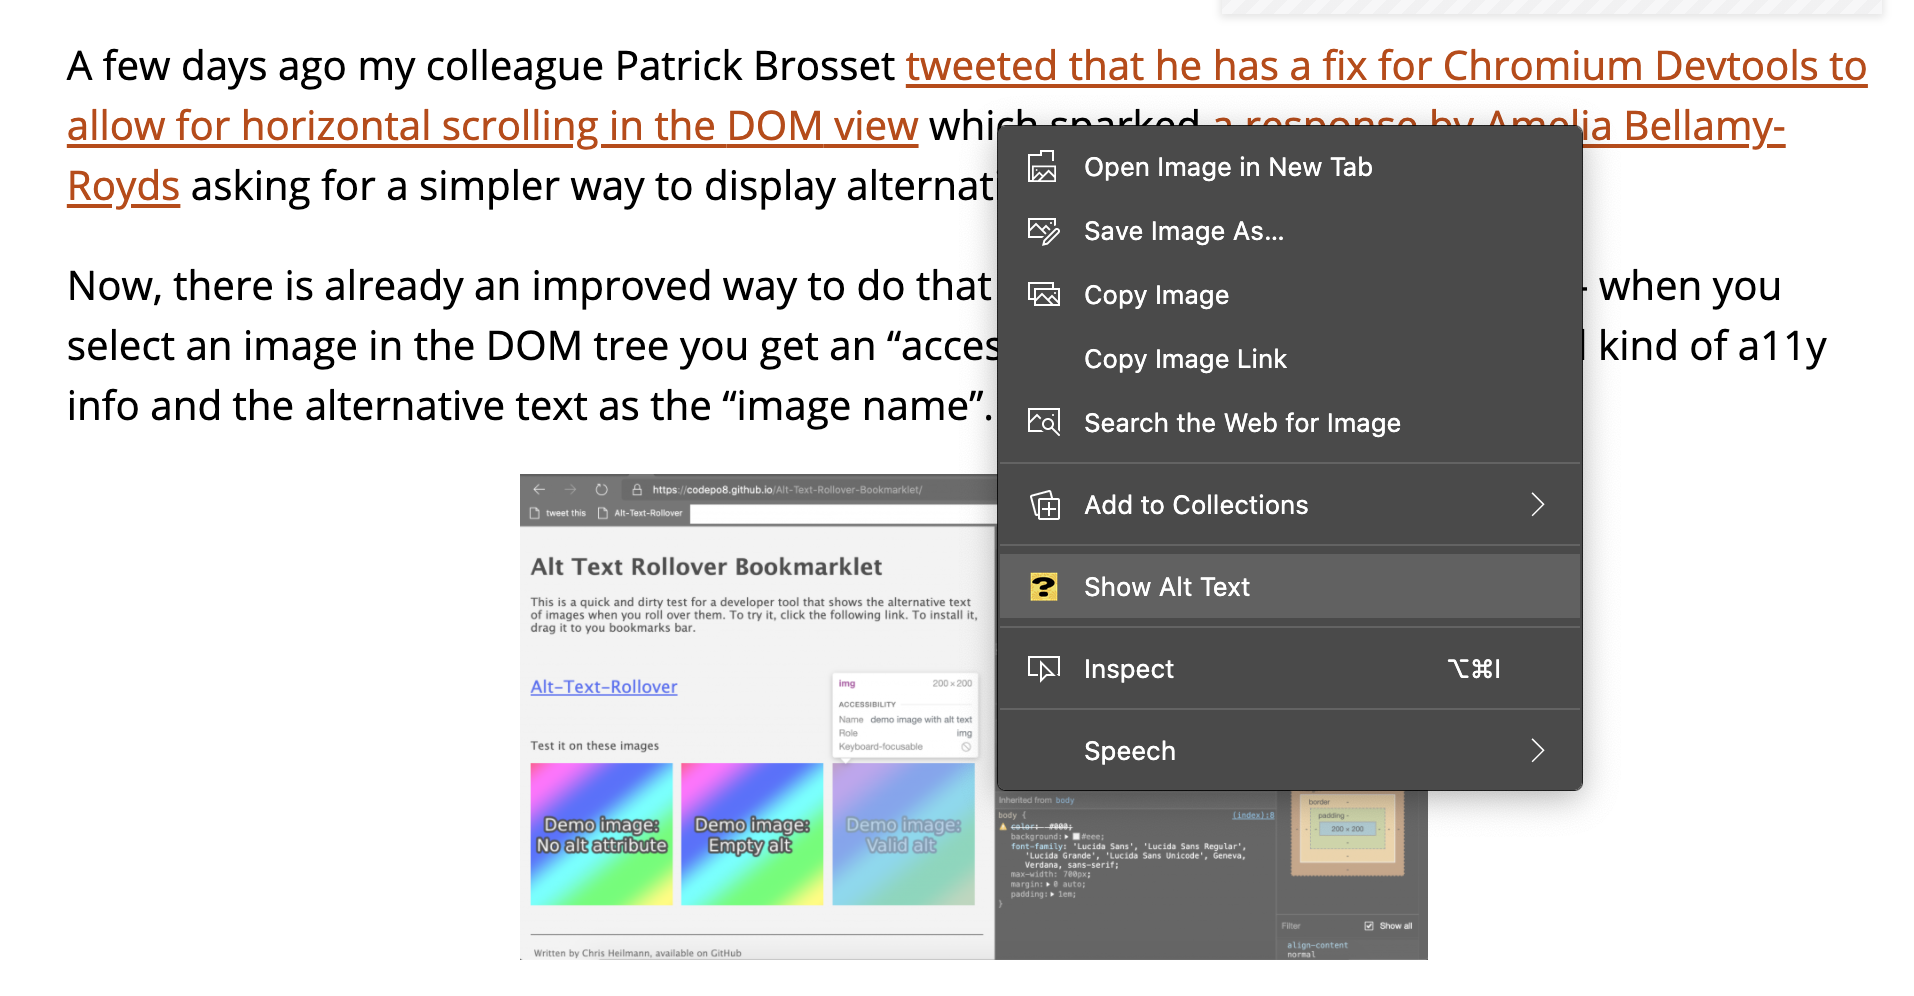 New menu item in the context menu on images